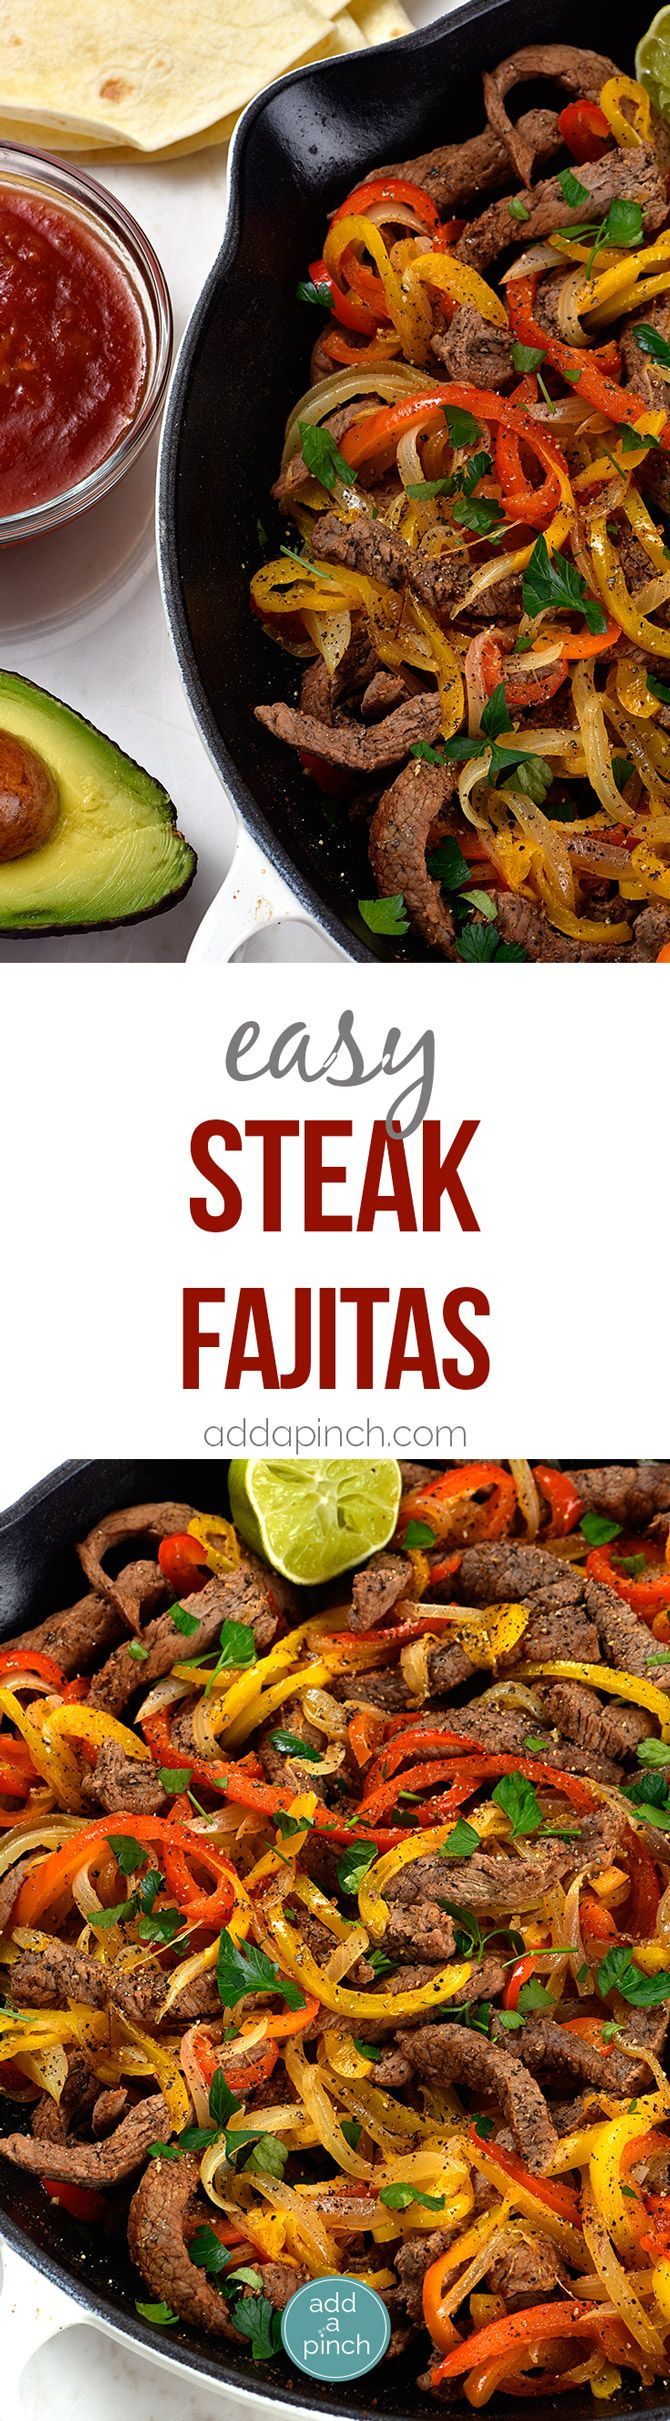 Steak Fajitas Recipe - Steak fajitas make a quick and easy meal perfect for weeknight suppers or weekend celebrations! Made with beef, peppers, onions and served with a stack of warm tortillas and condiments. They are always a favorite! // addapinch.com